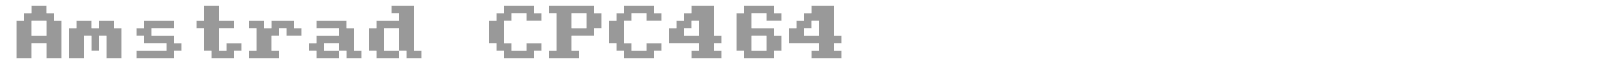 Amstrad CPC464 font preview